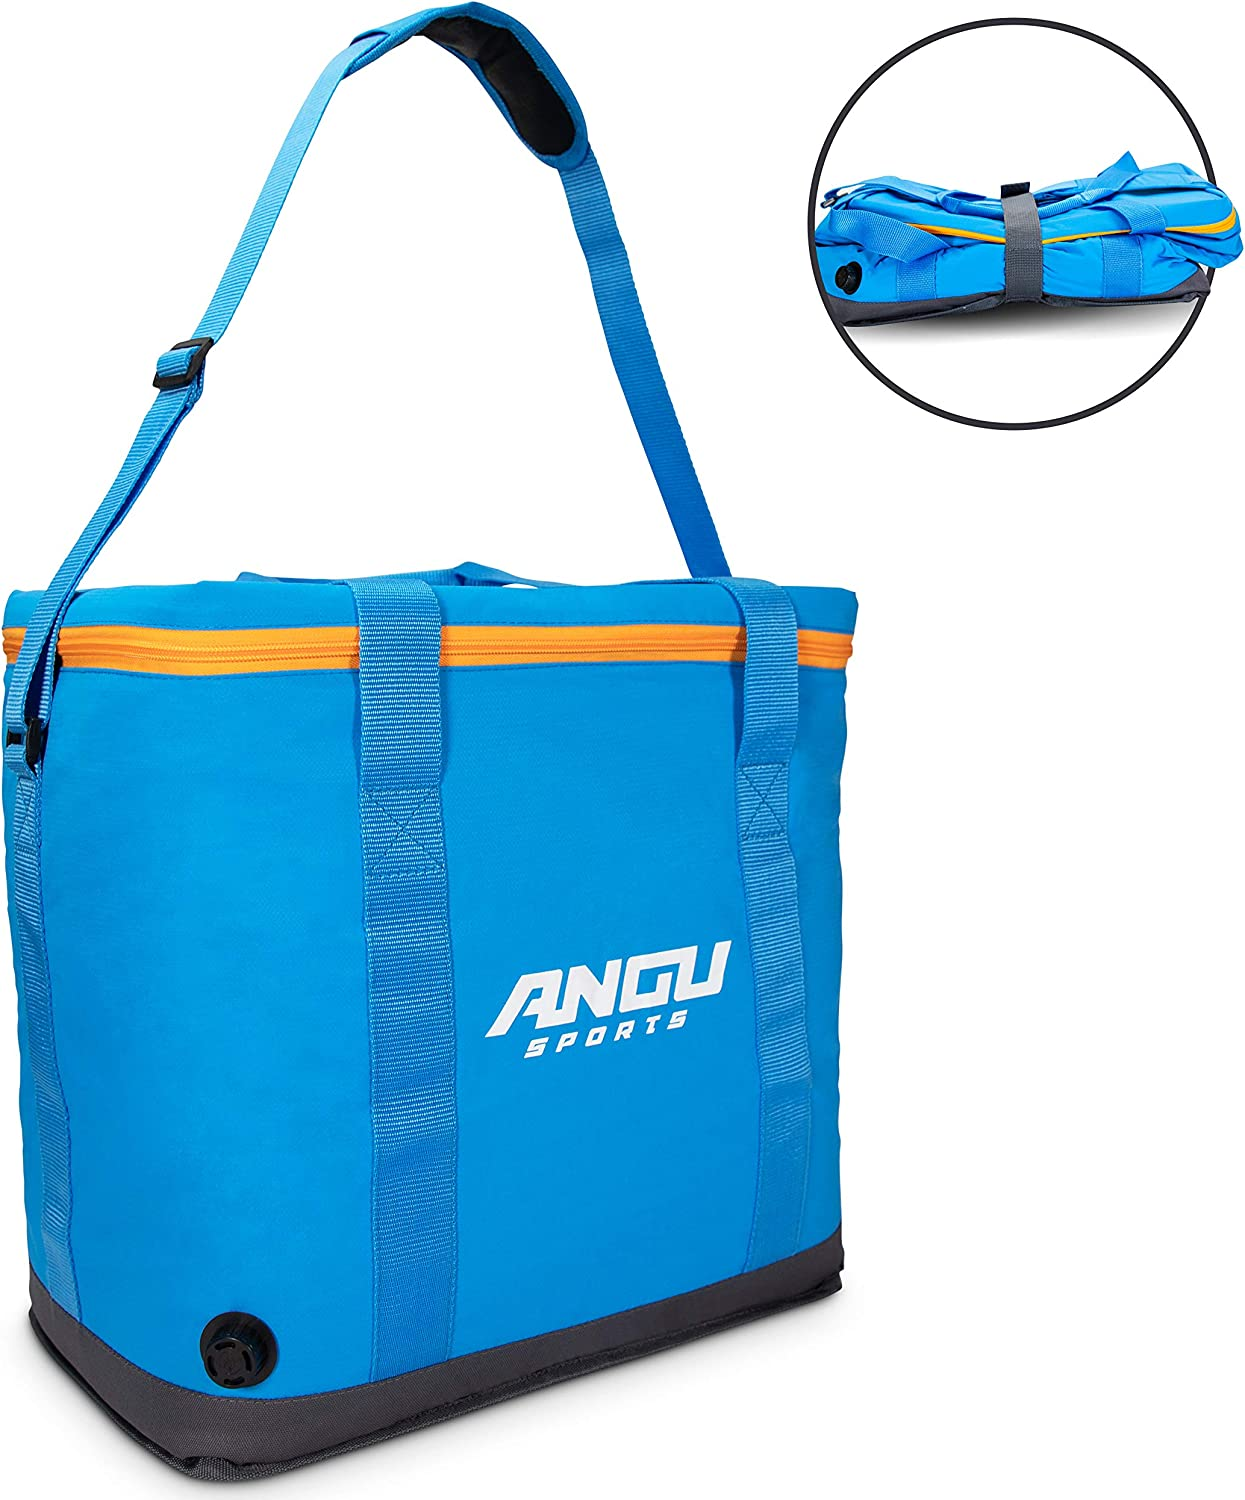 ANGUsports 30l Large Cooler Bag – Insulated Leak Proof Soft Cooler Bag Perfect for Camping, Beach, Pool, Boating, Picnic Outdoor Activities Collapsible Coolers for Travel Cooler with Handles